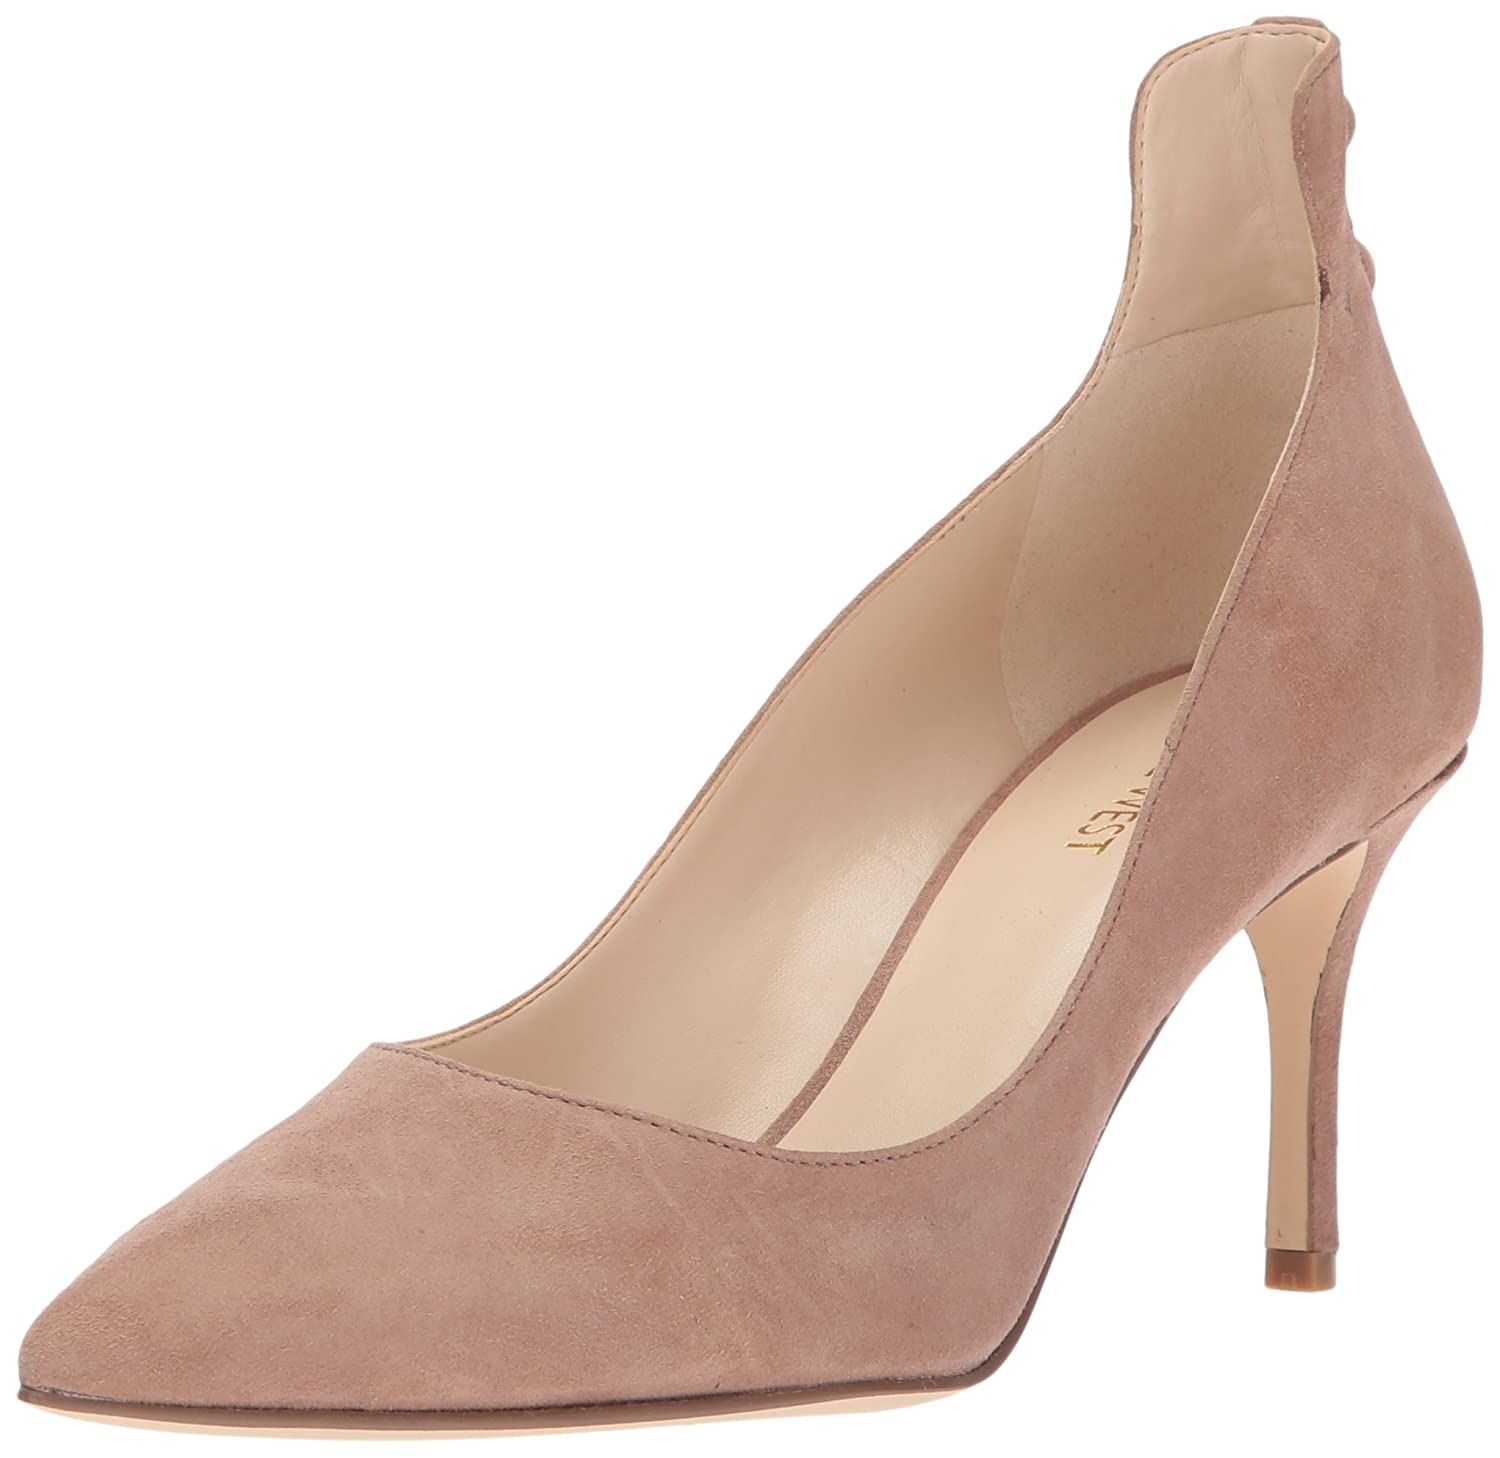 Nine West Women's Maqui Pump B01N3CH335 6.5 B(M) US|Natural Suede